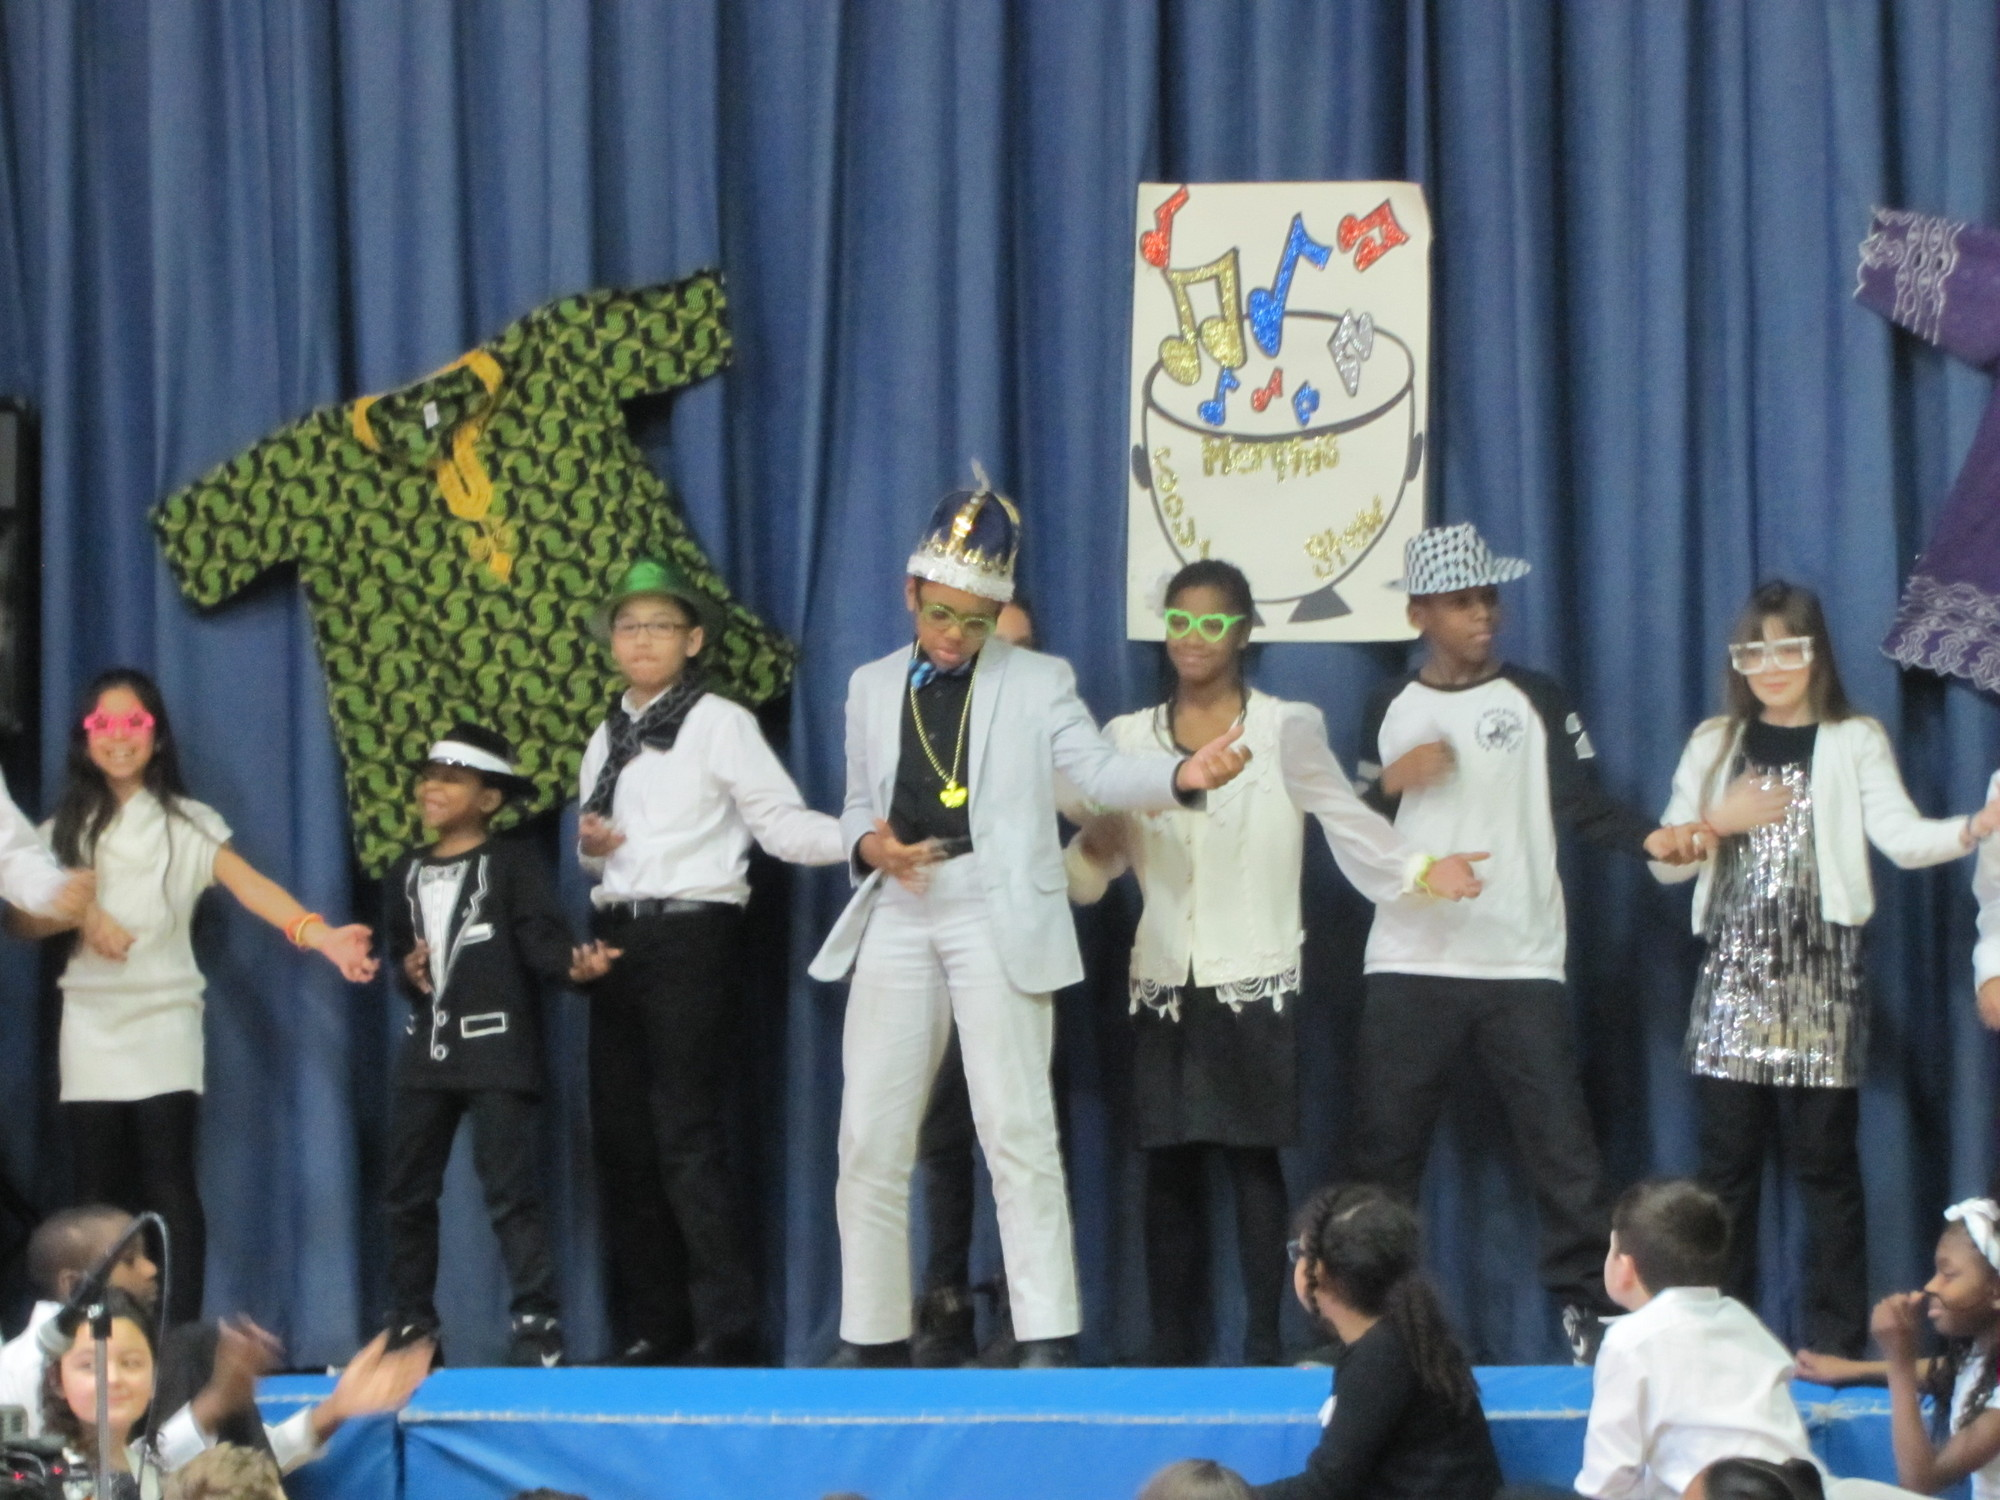 Davison Avenue students shook it up at this year�s assembly.